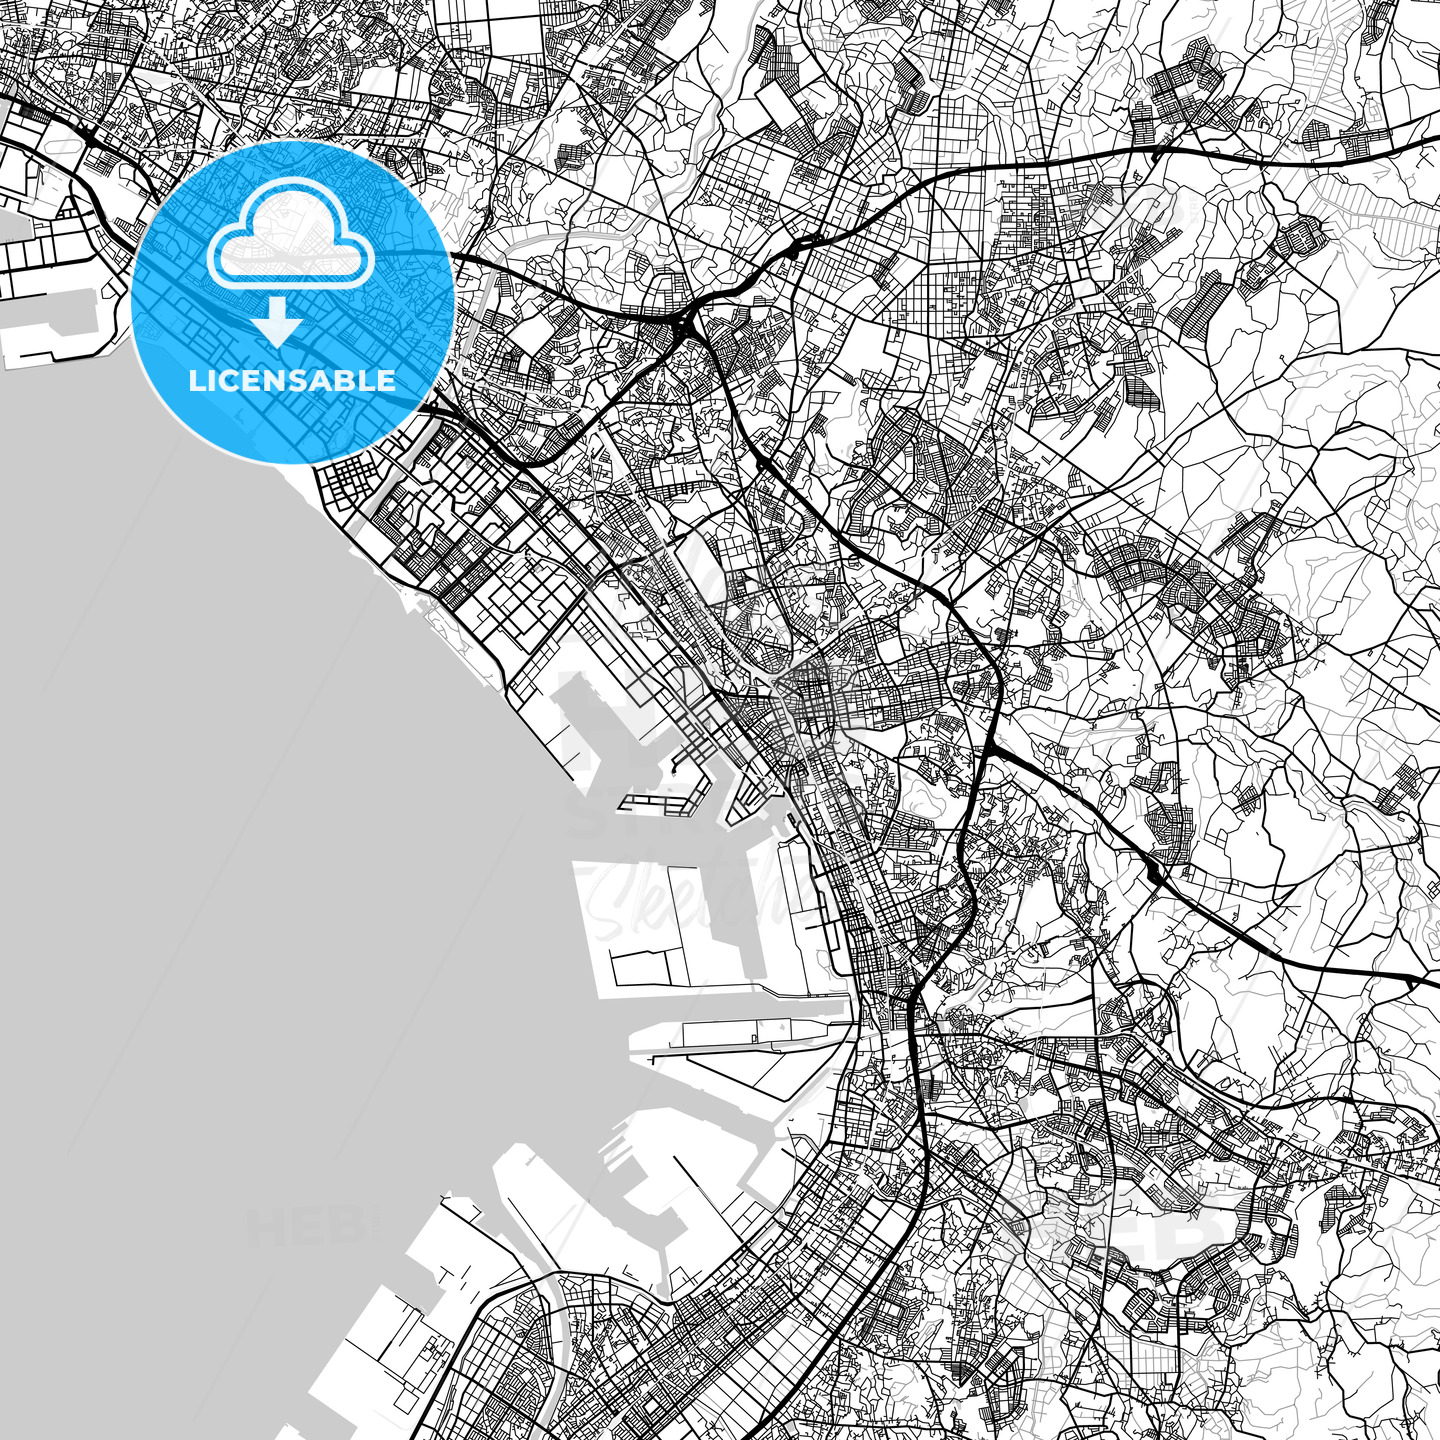 千葉市 Chiba, City Map, Light - HEBSTREITS